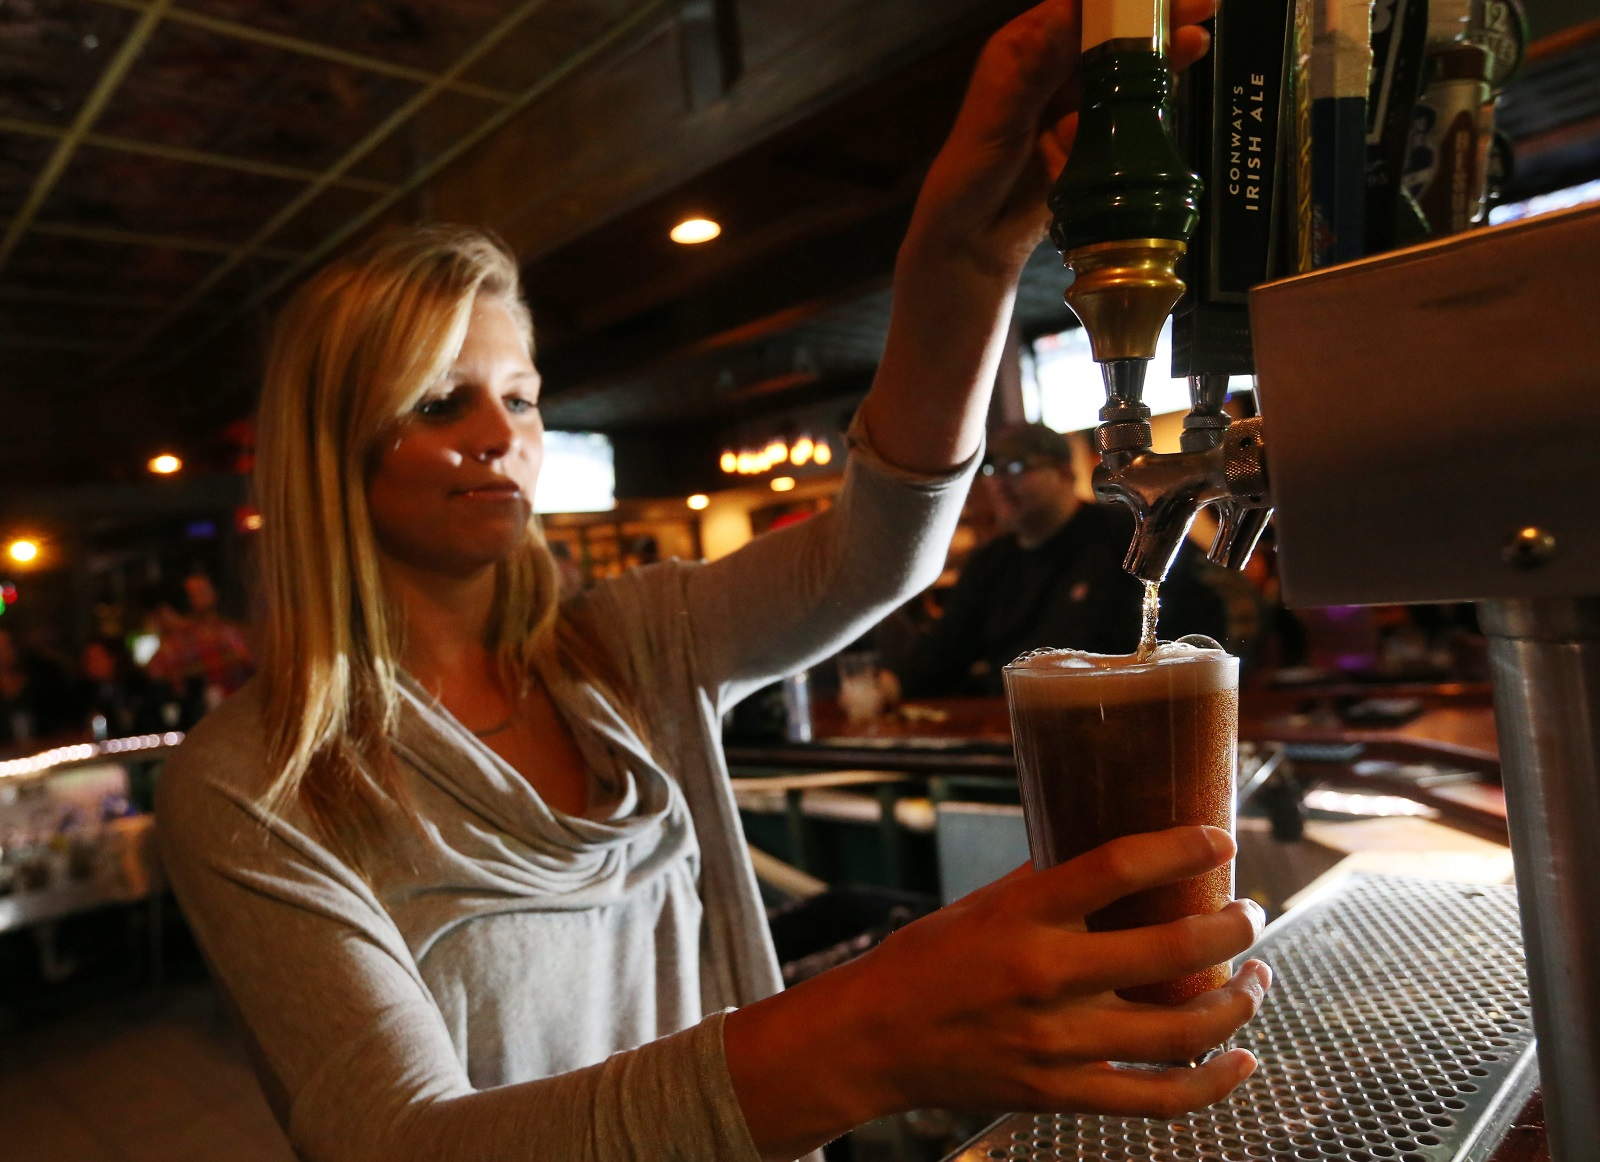 Doc Sullivan's bartender Samantha Soltis pours a glass of Smithwick's, an imported Irish Ale.  (Sharon Cantillon/Buffalo News)